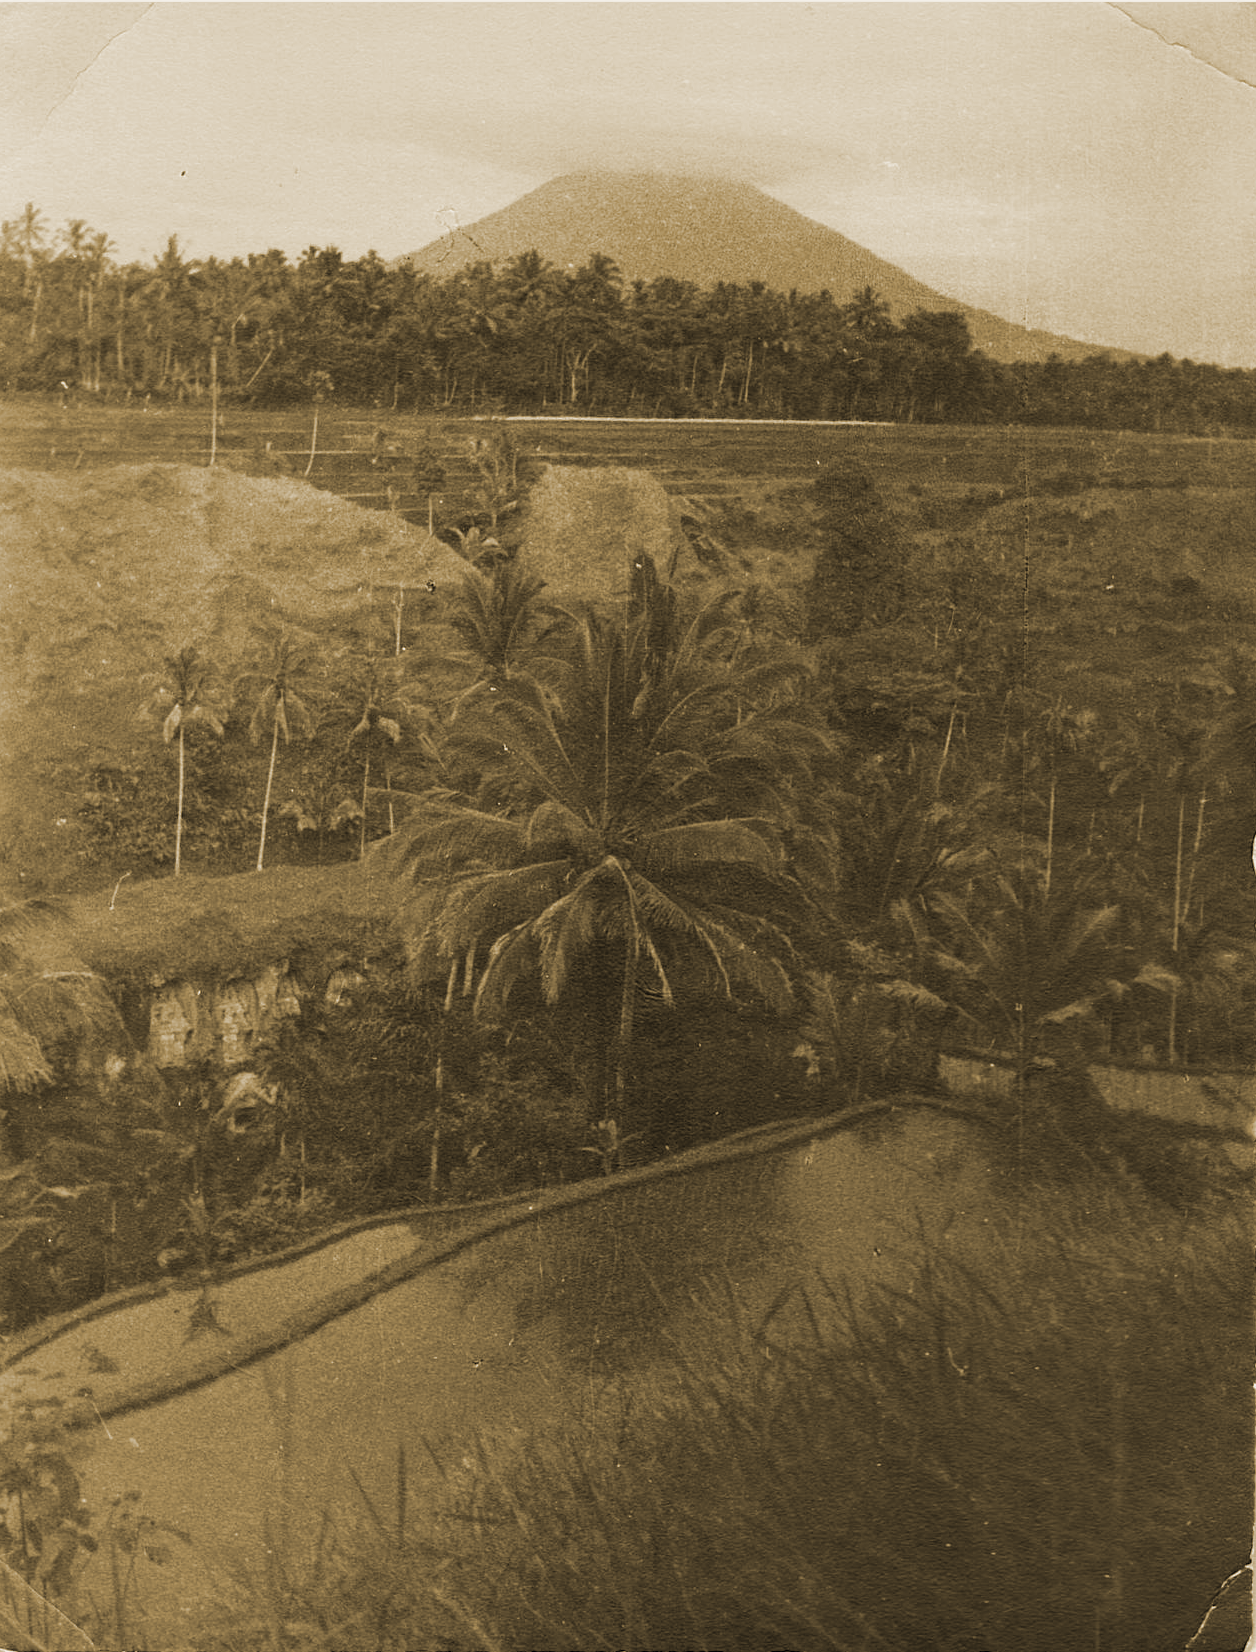 Arthur Fleischmann, Rice Fields in Tampak Siring with Gunung Agung in the Background, gelatin silver print, 16 x 21.1 cm.